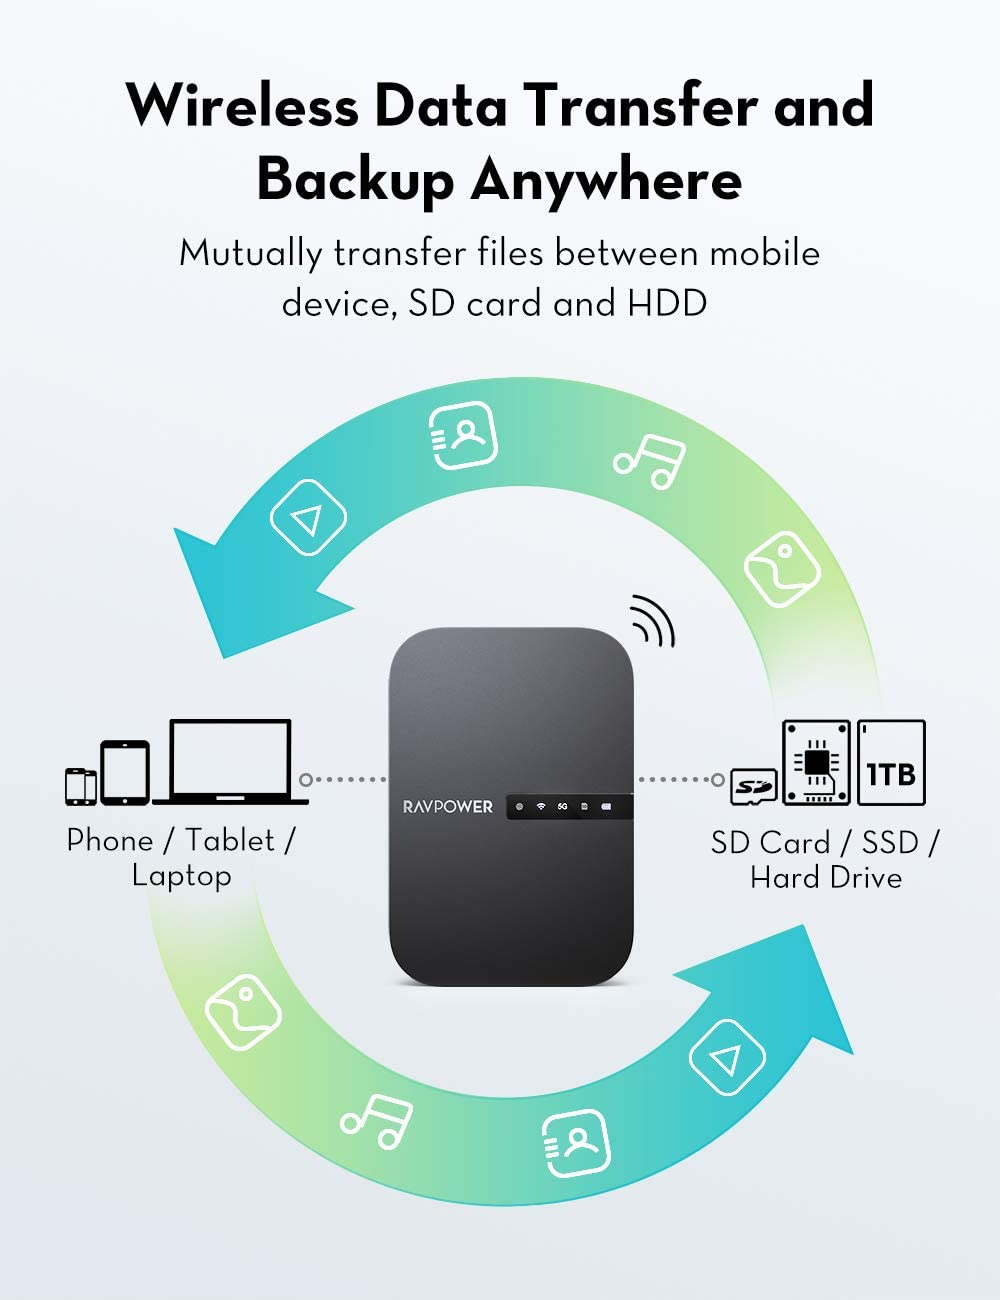 RAVPower FileHub AC750 Wireless Travel Router with 6,700mAh Battery